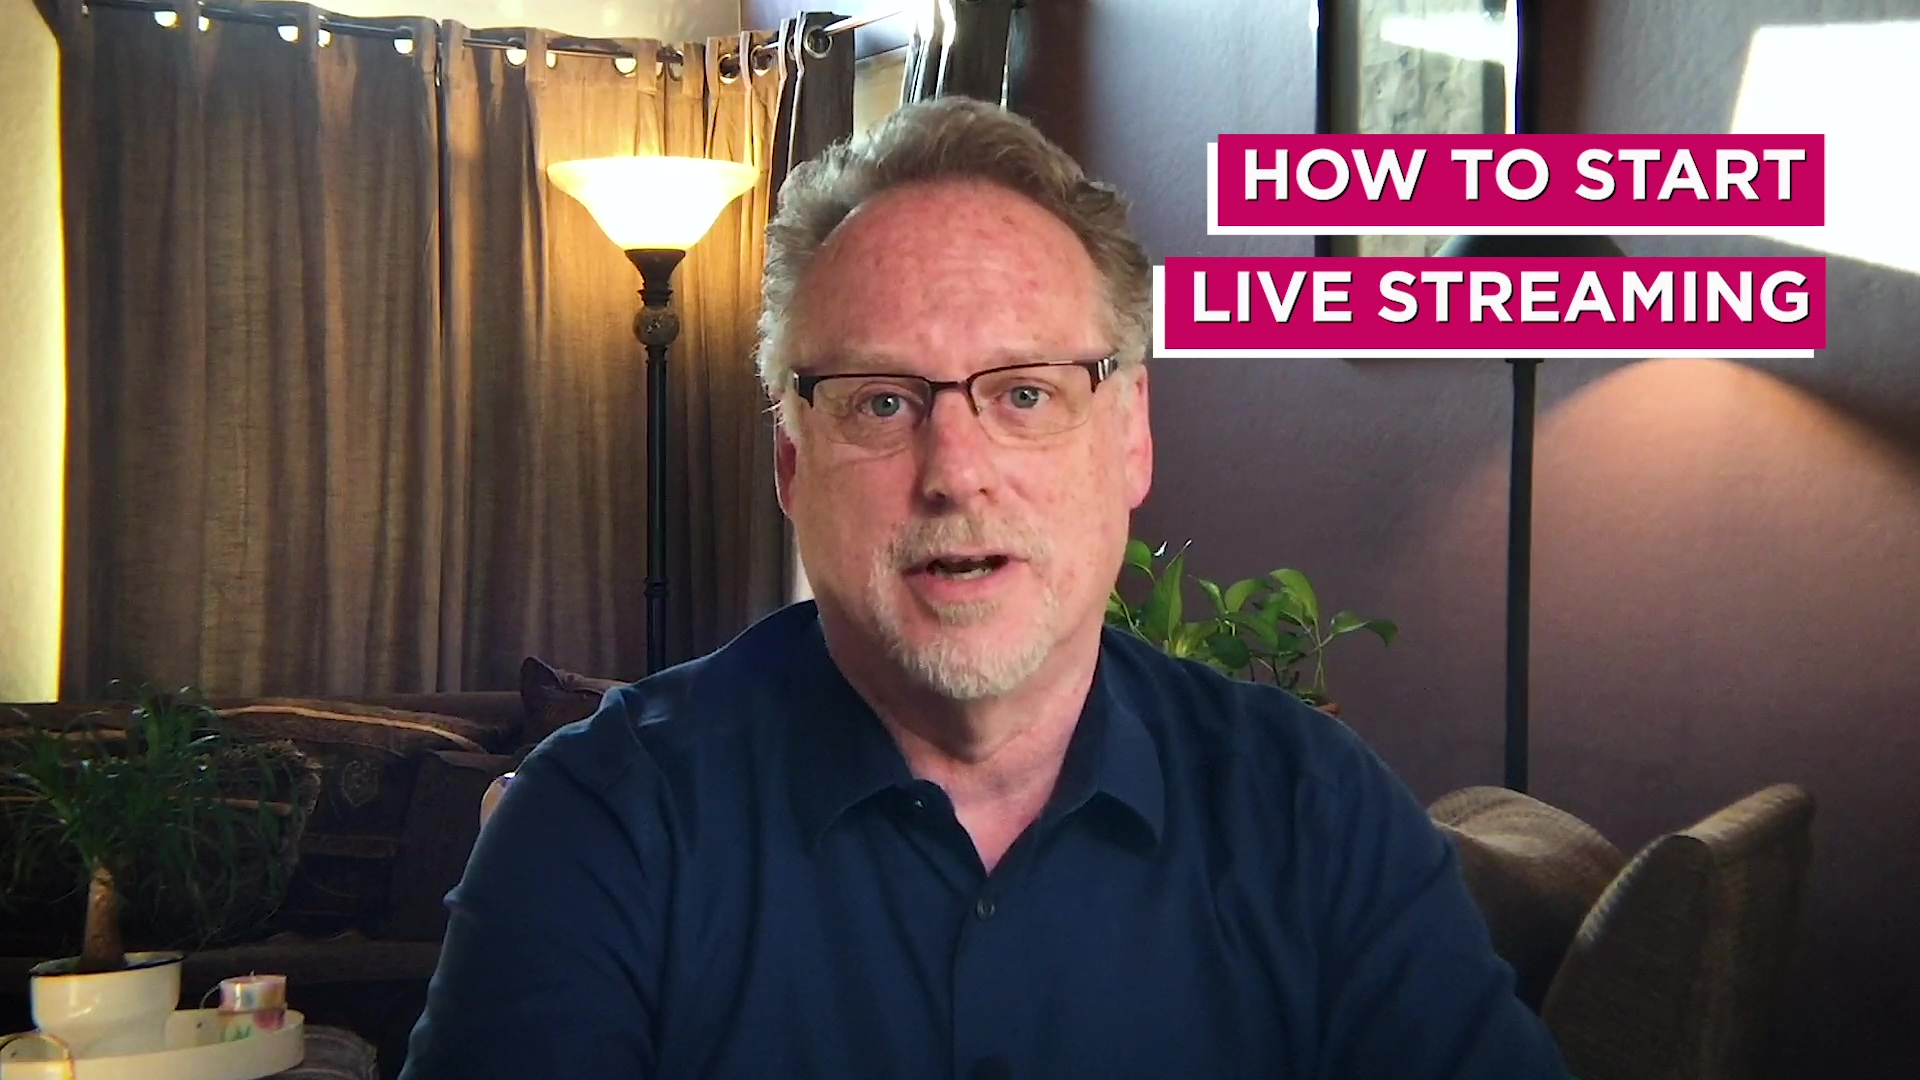 How To Start Live Streaming Today